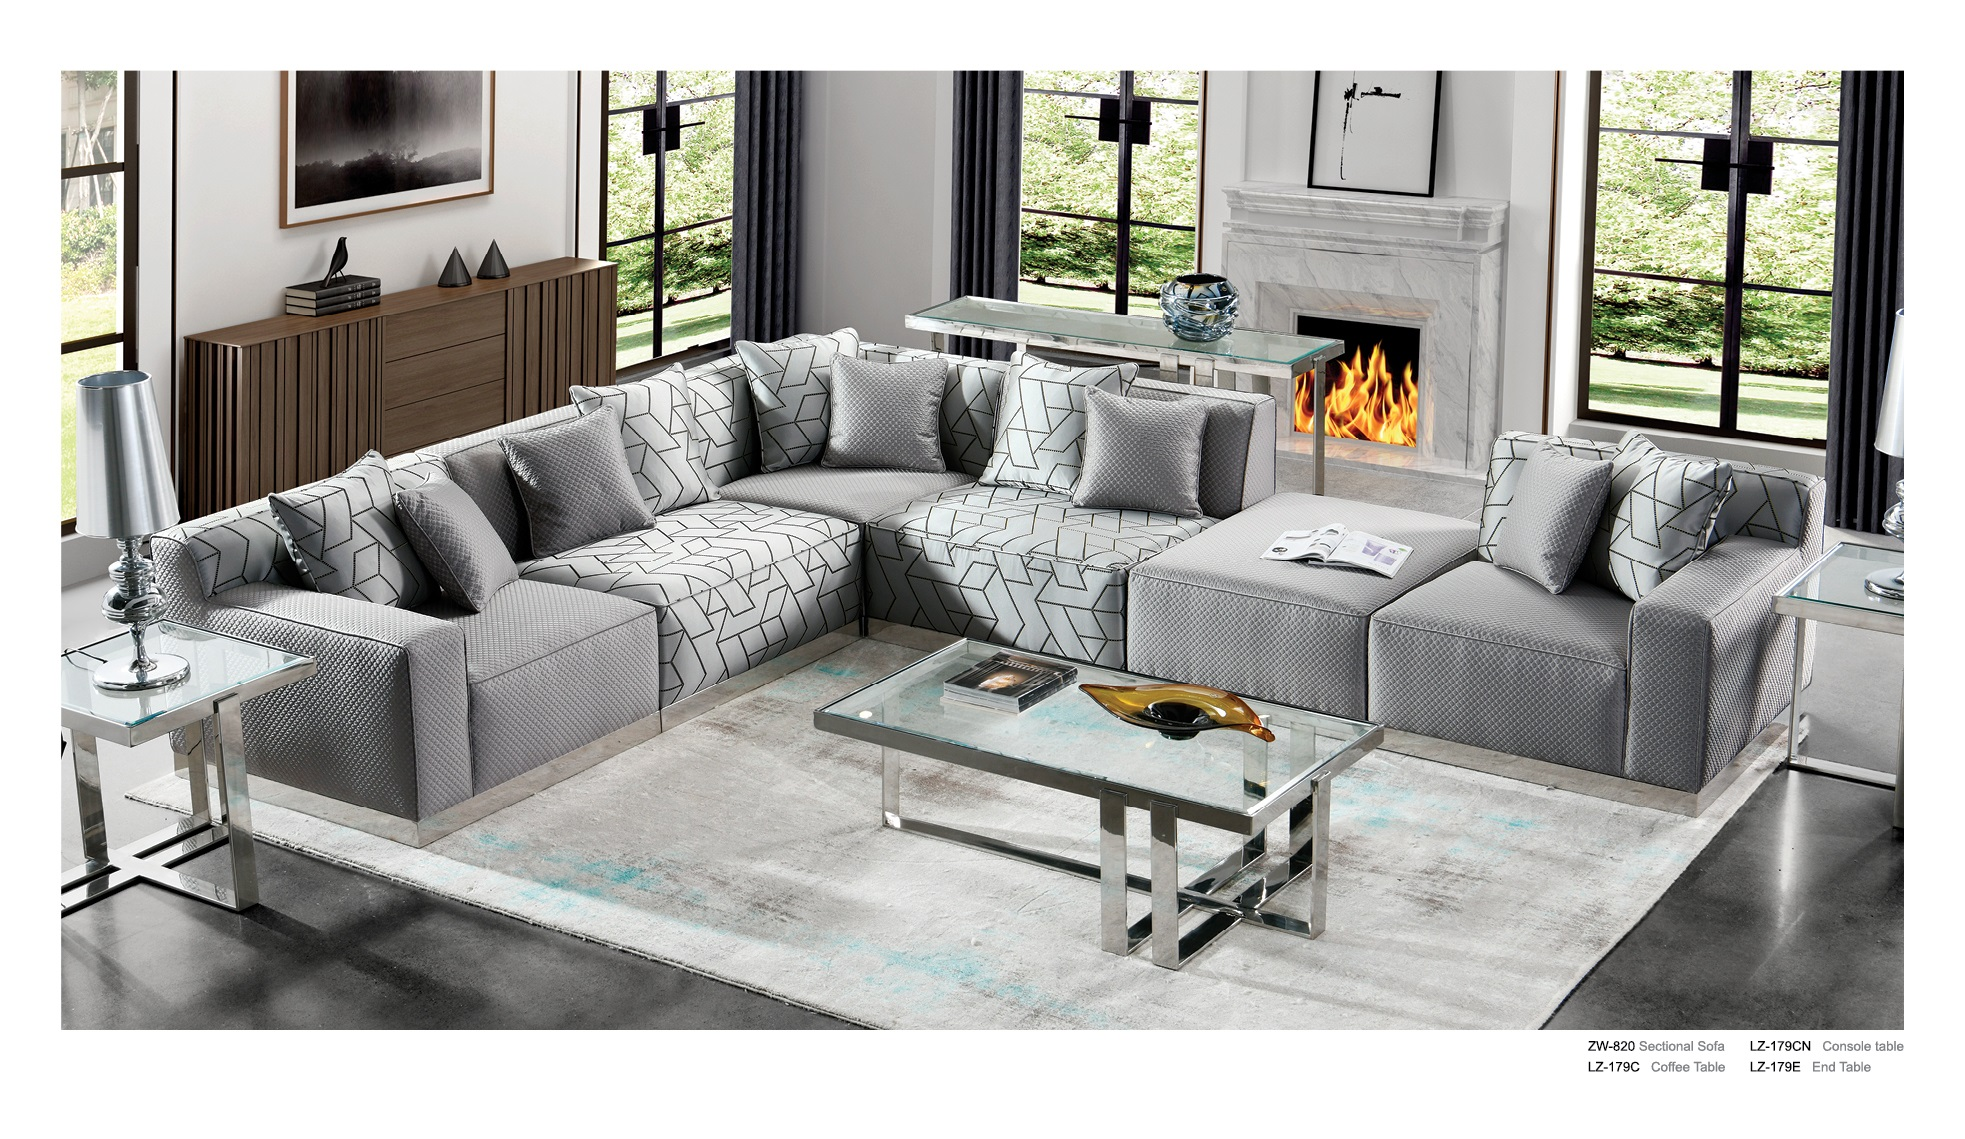 Custom L Shaped Modern Simple Furniture Large Sectional Combination Sofa  For Living Room - Buy 3 Seater Upholstery Fabric Modern Sofa With Stainless  ...